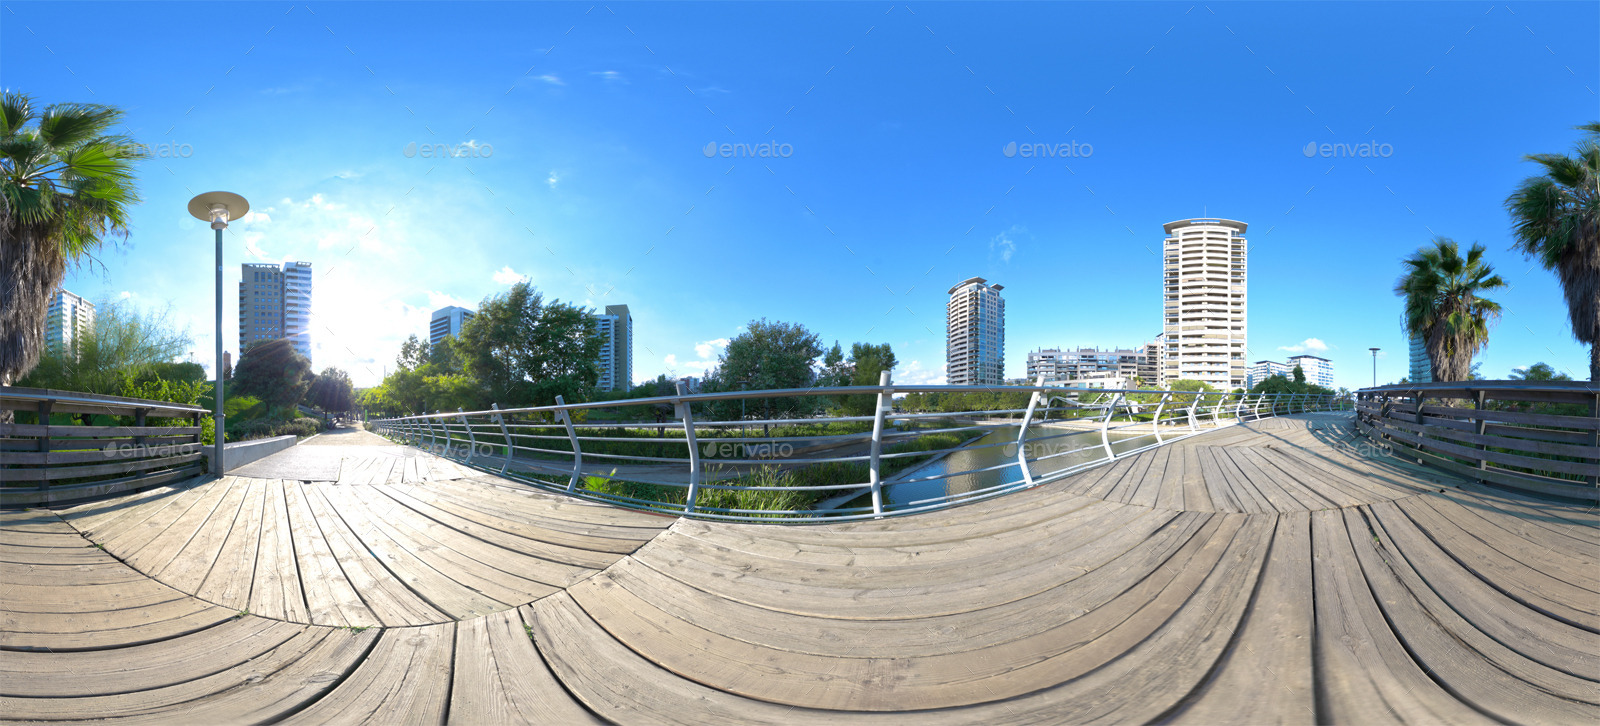 Hdri 002 Exterior Clear Sky Backplates By Giancr